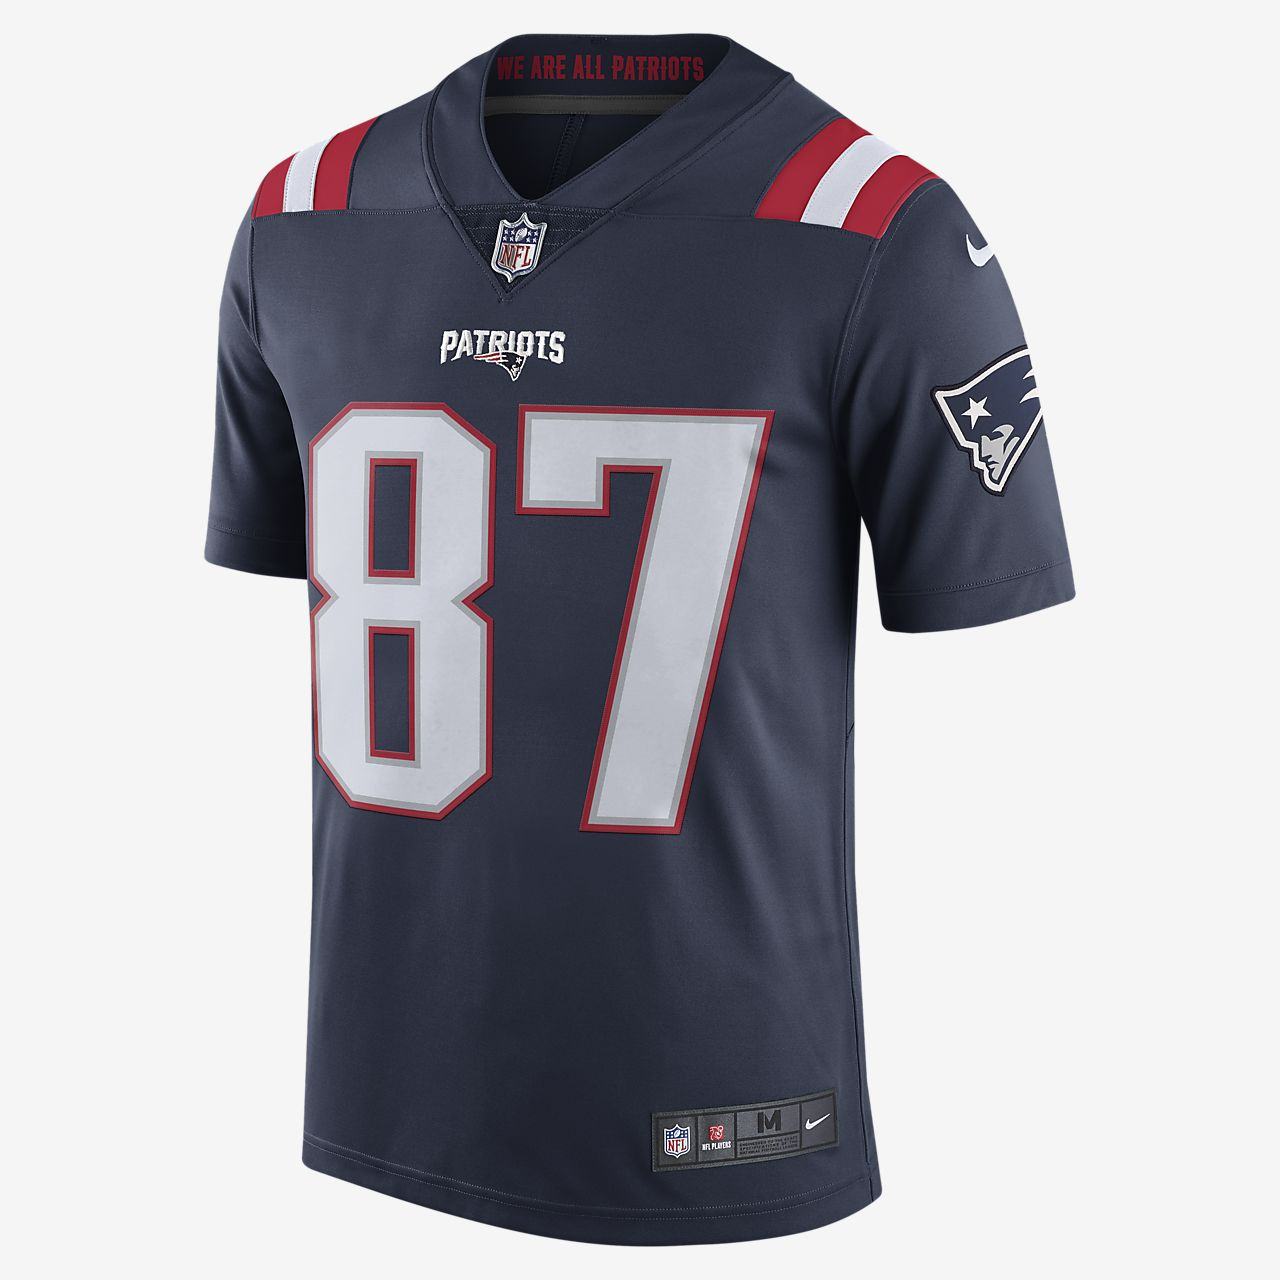 patriots color rush jerseys for sale